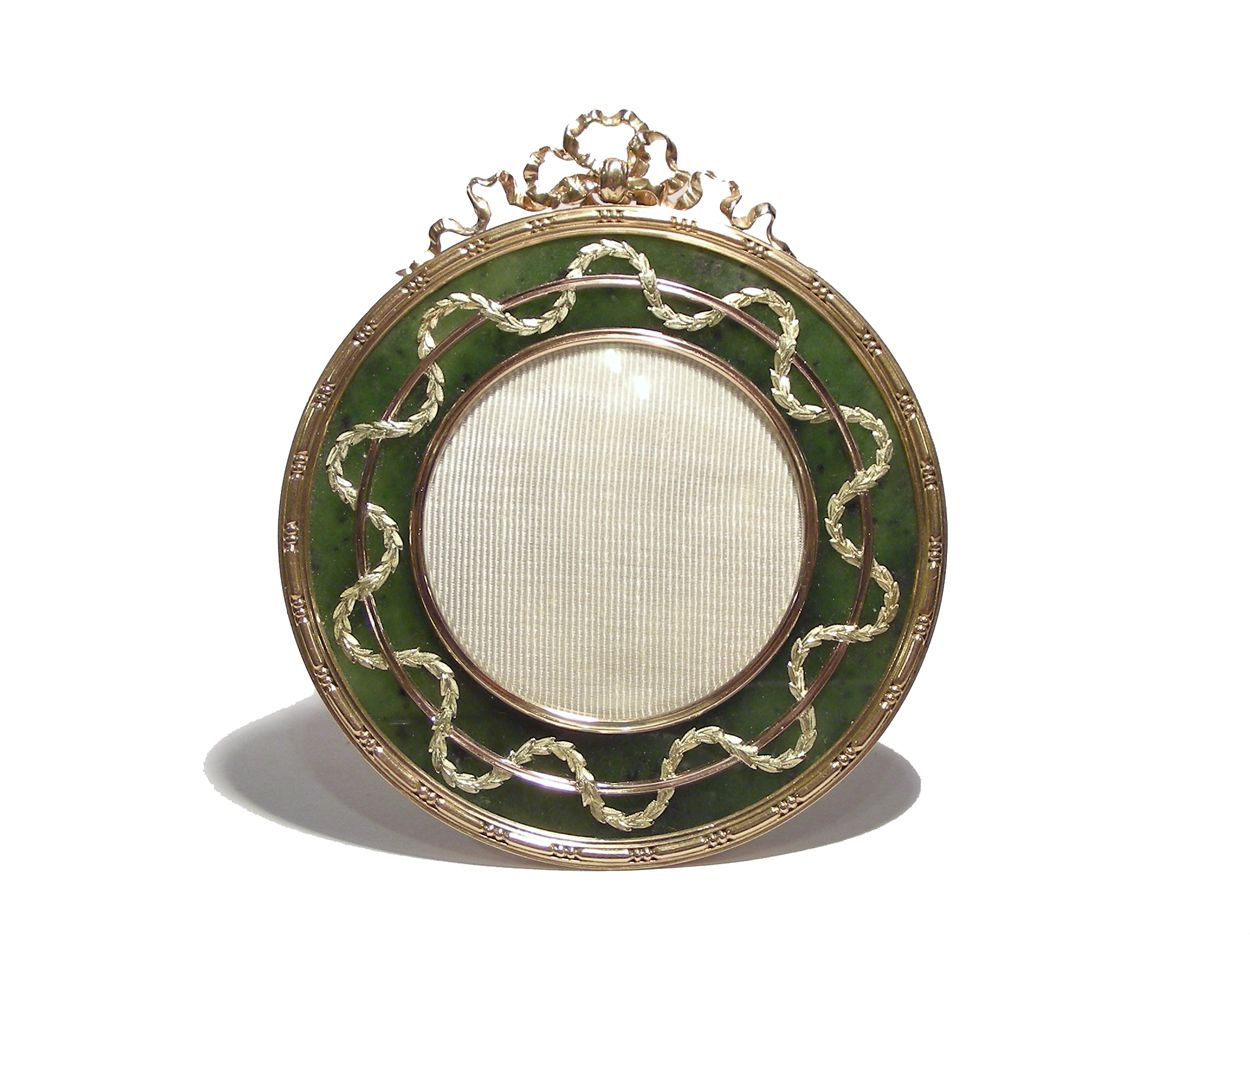 A two coloured gold nephrite frame by Fabergé, workmaster Michael Perchin, pre-1896, formed from a circular panel of nephrite, centred by a circular aperture beneath glass held in a reeded gold bezel, the opening encircled by undulating trail of finely chased and richly coloured gold laurels, bordered in red gold with a three-dot and dash motif and surmounted by a tied red gold bow, supported on a scrolled gold strut and backed with ivory.